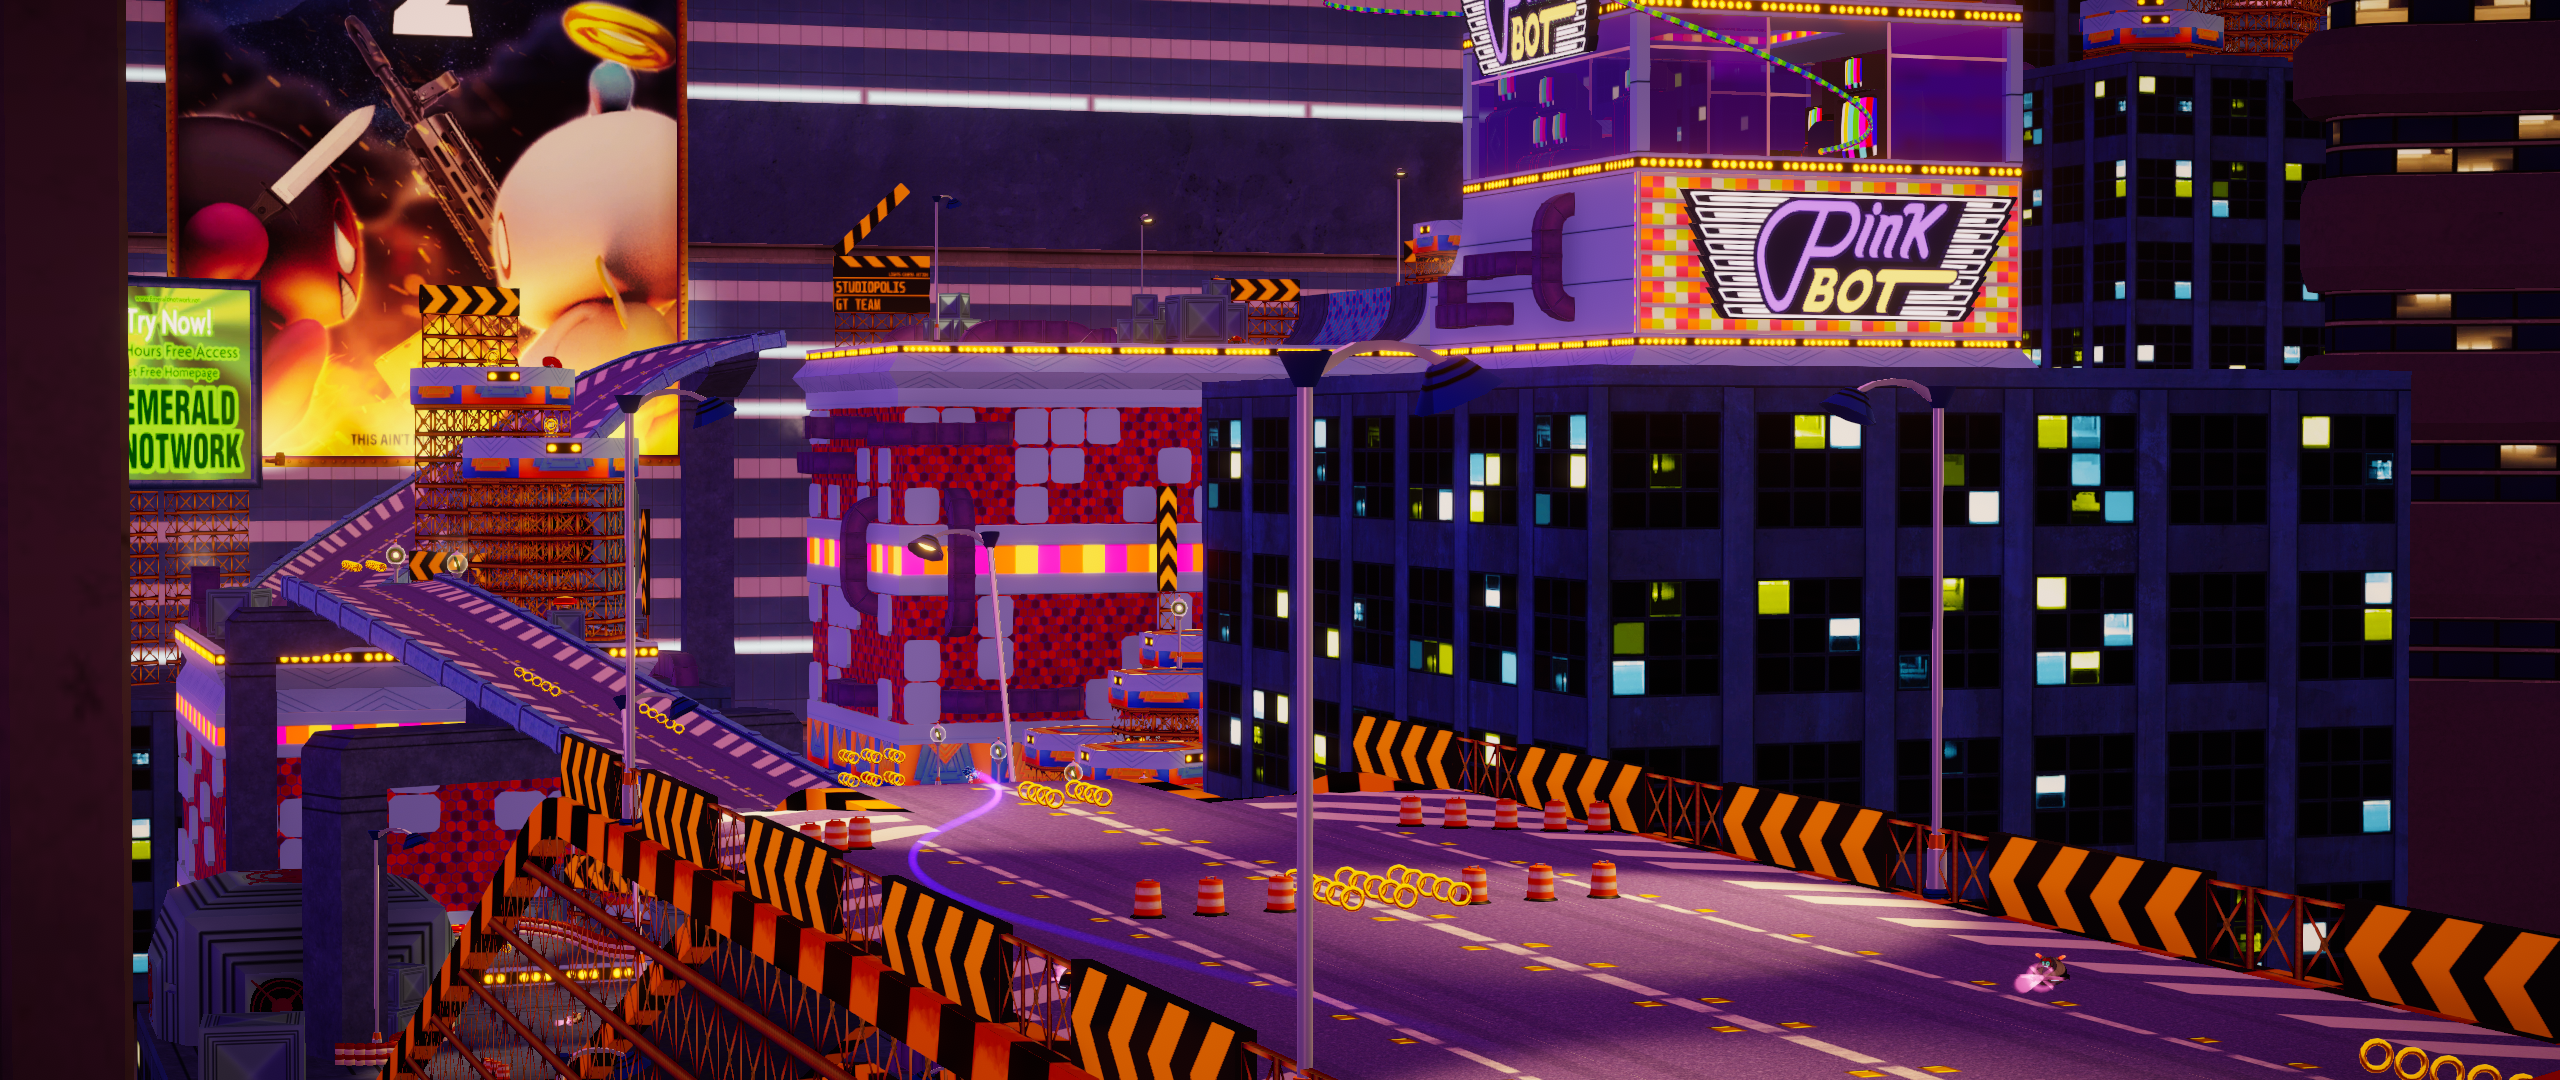 Sonic GT9_4_12_55_51.png